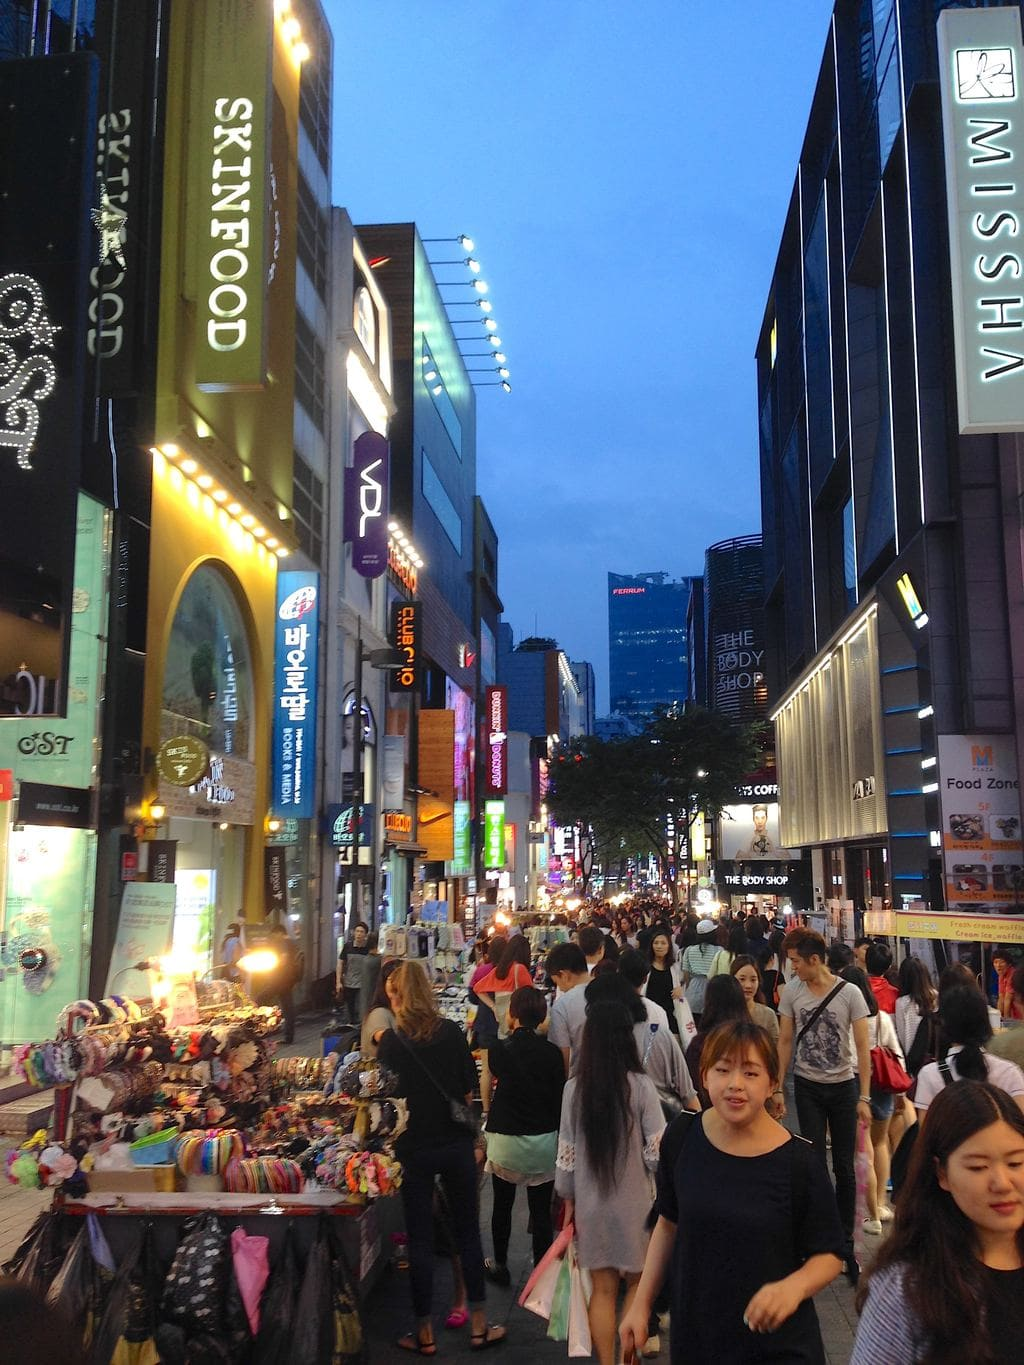 Night shopping in Myeong-dong